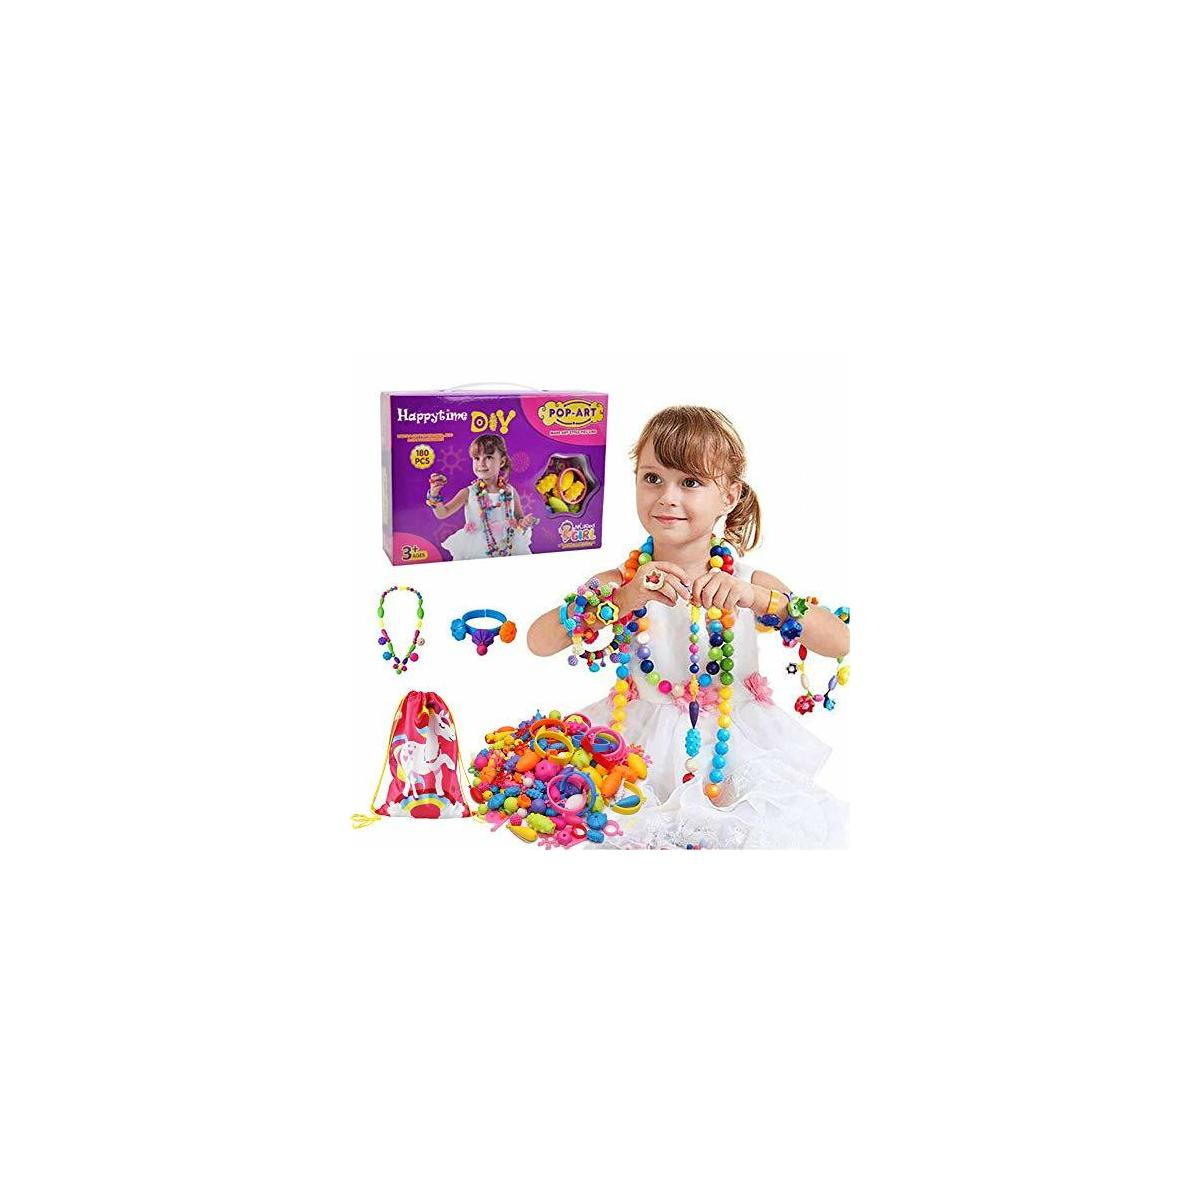 Happytime Snap Pop Beads Girls Toy 180 Pieces DIY Jewelry Kit Fashion Fun for Necklace Ring Bracelet Art Crafts Gifts Toys for 3, 4, 5, 6, 7 ,8 Year Old Kids Girls